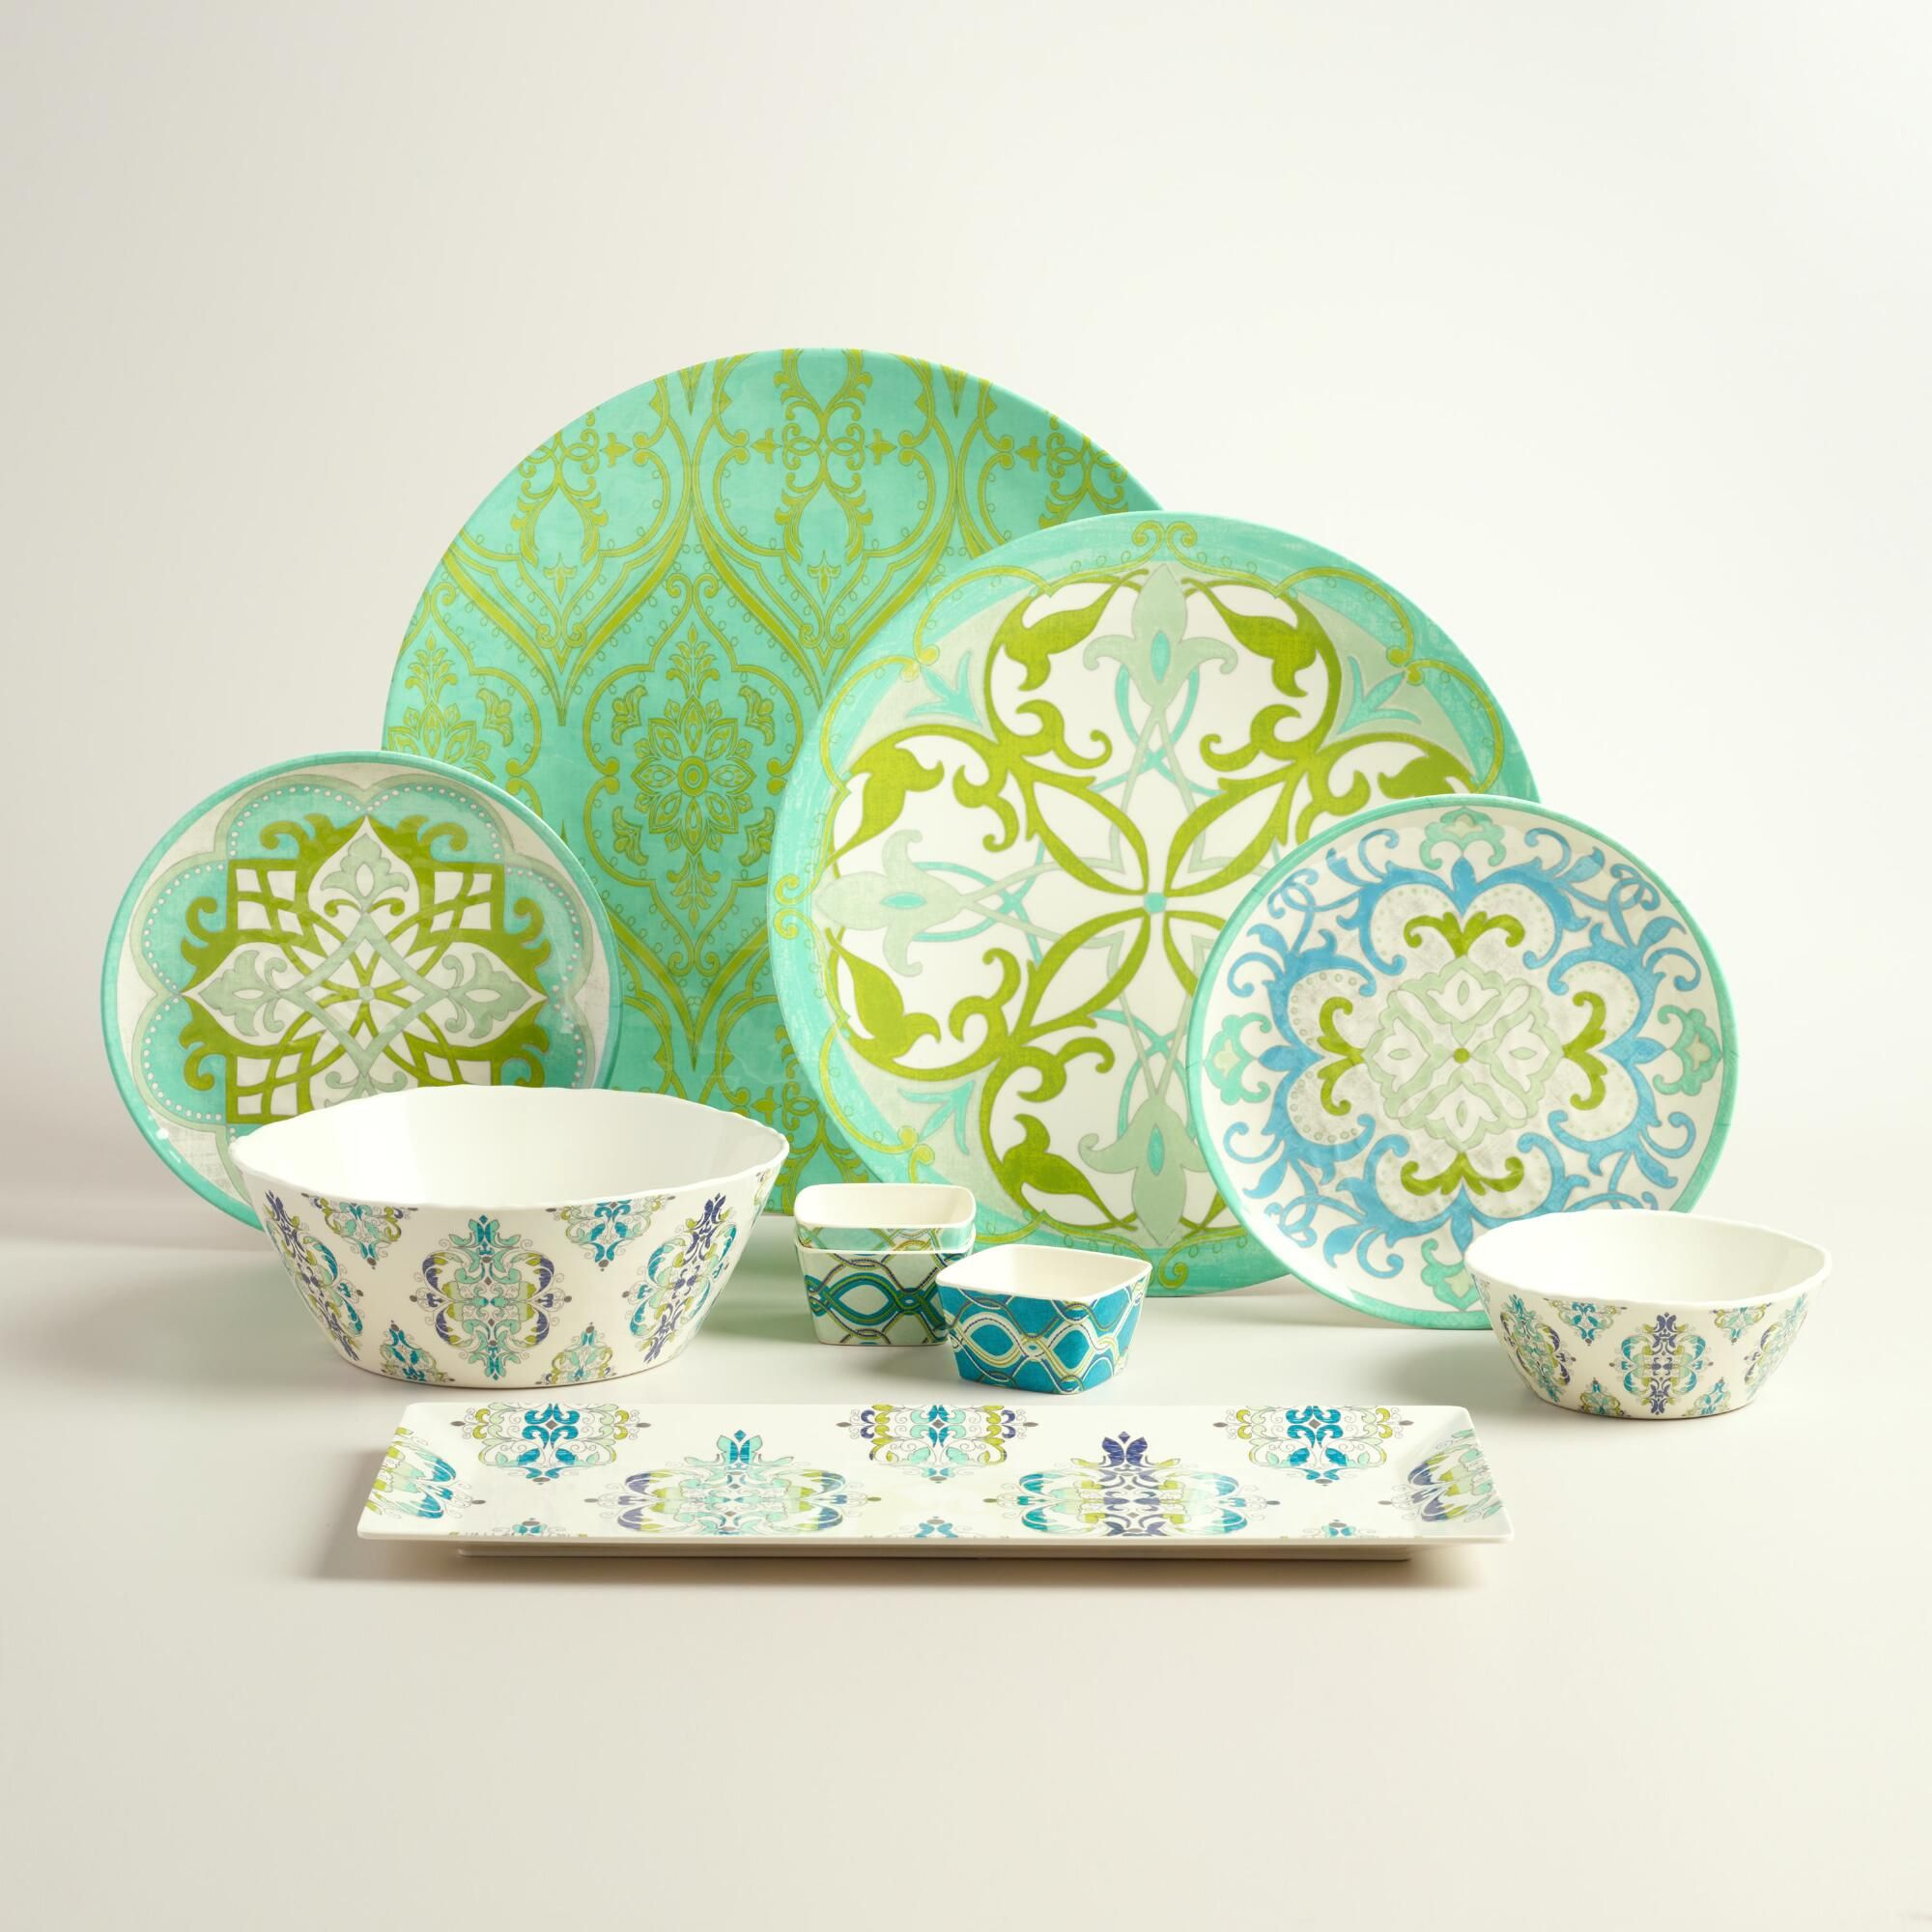 Coastal Melamine Dinnerware Collection Melamine Dinnerware Melamine Dinner Plates Dining Accessories